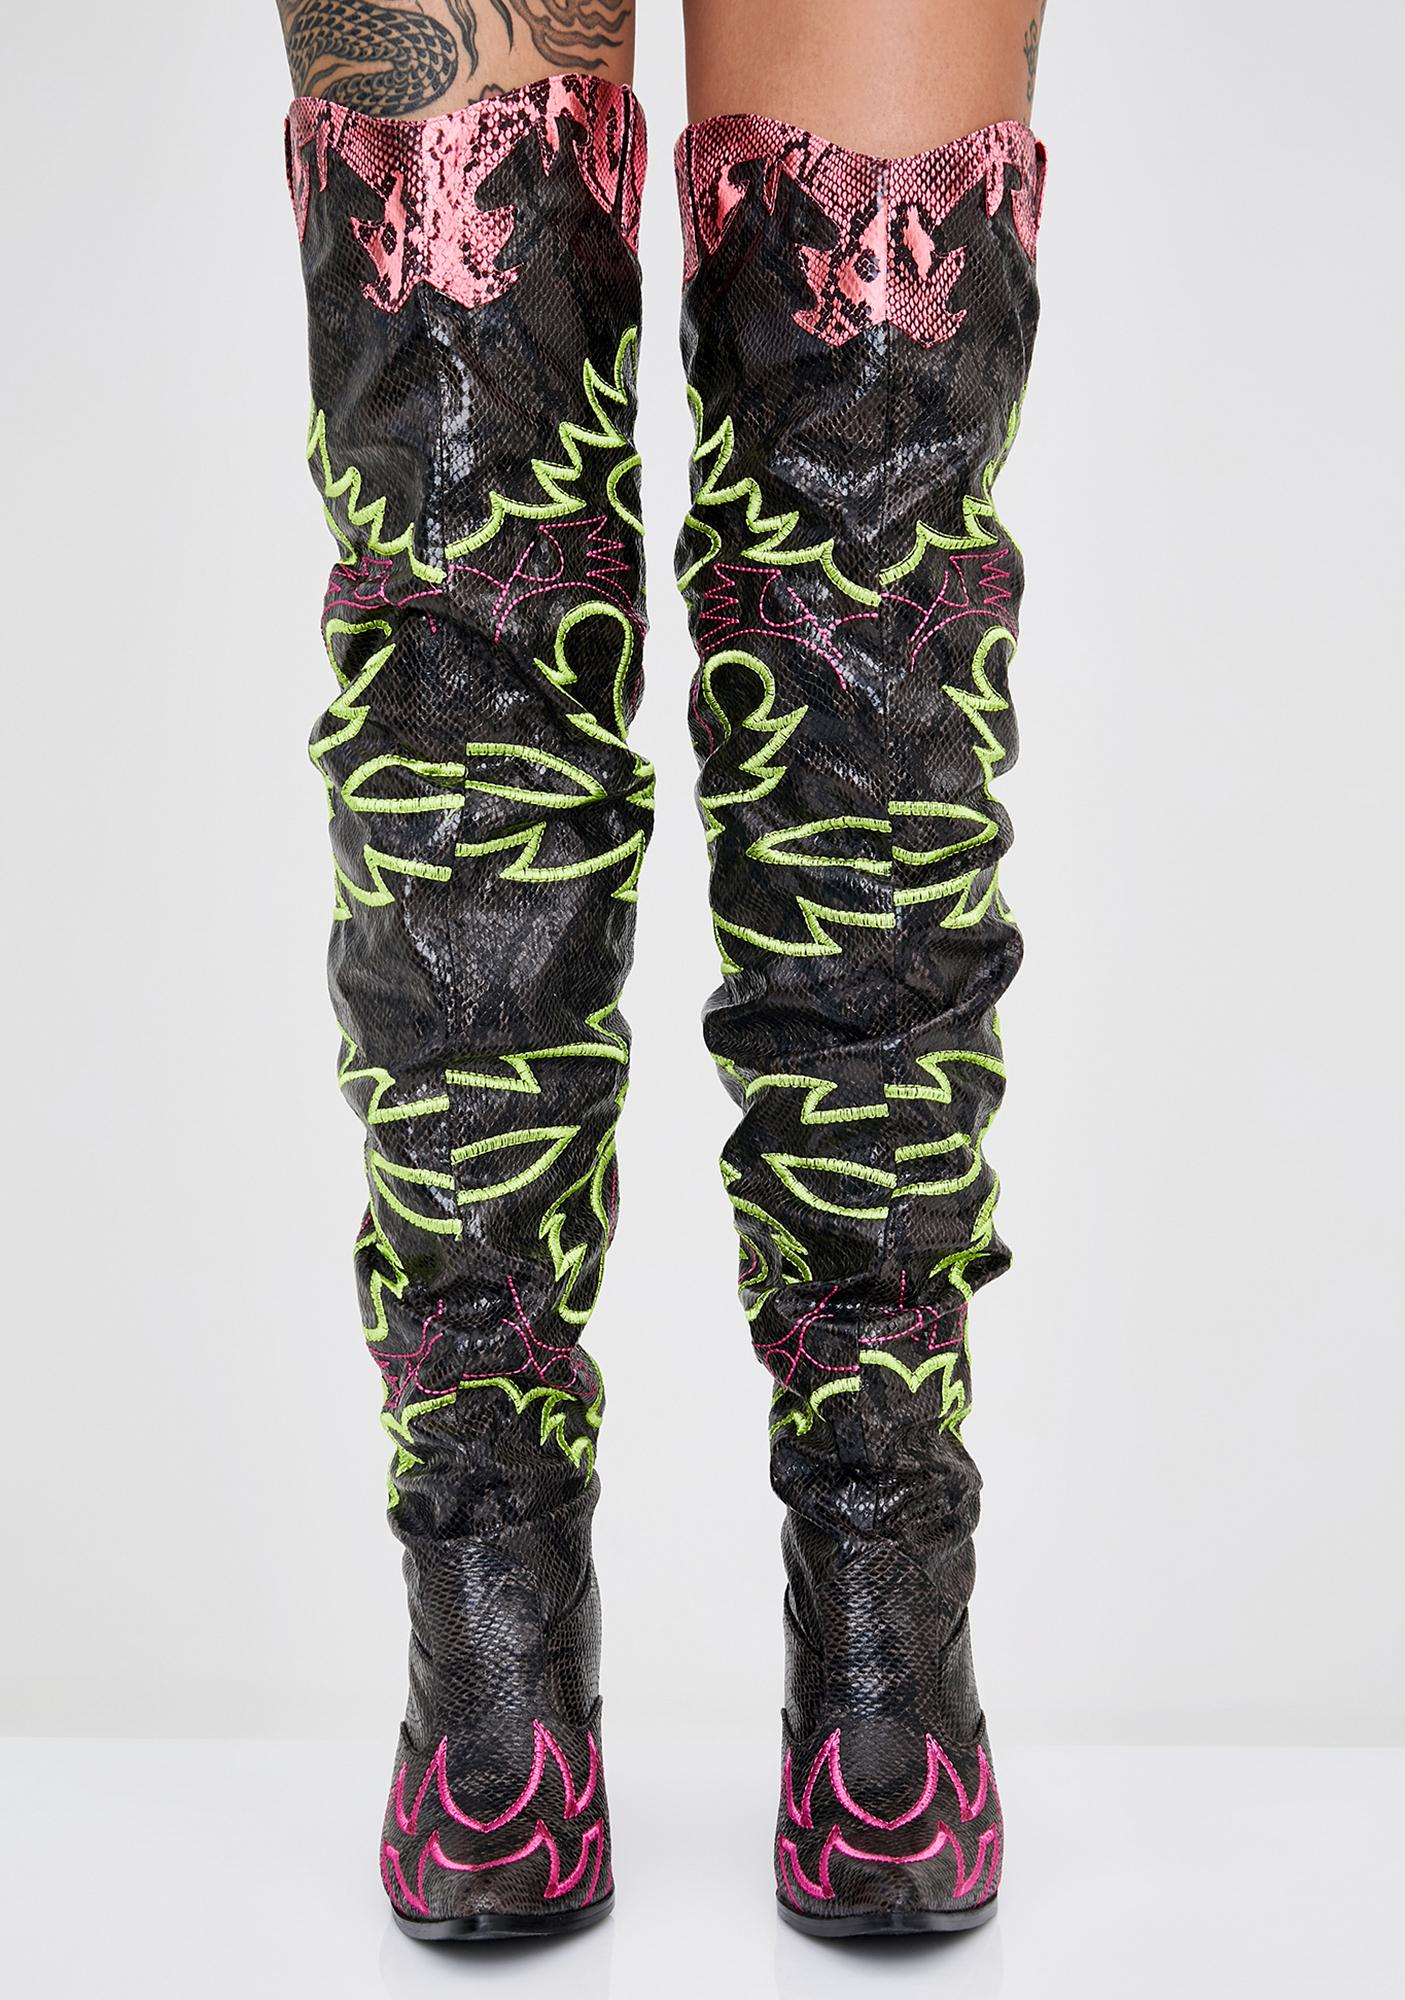 Atomic Love Bandit Cowgirl Boots